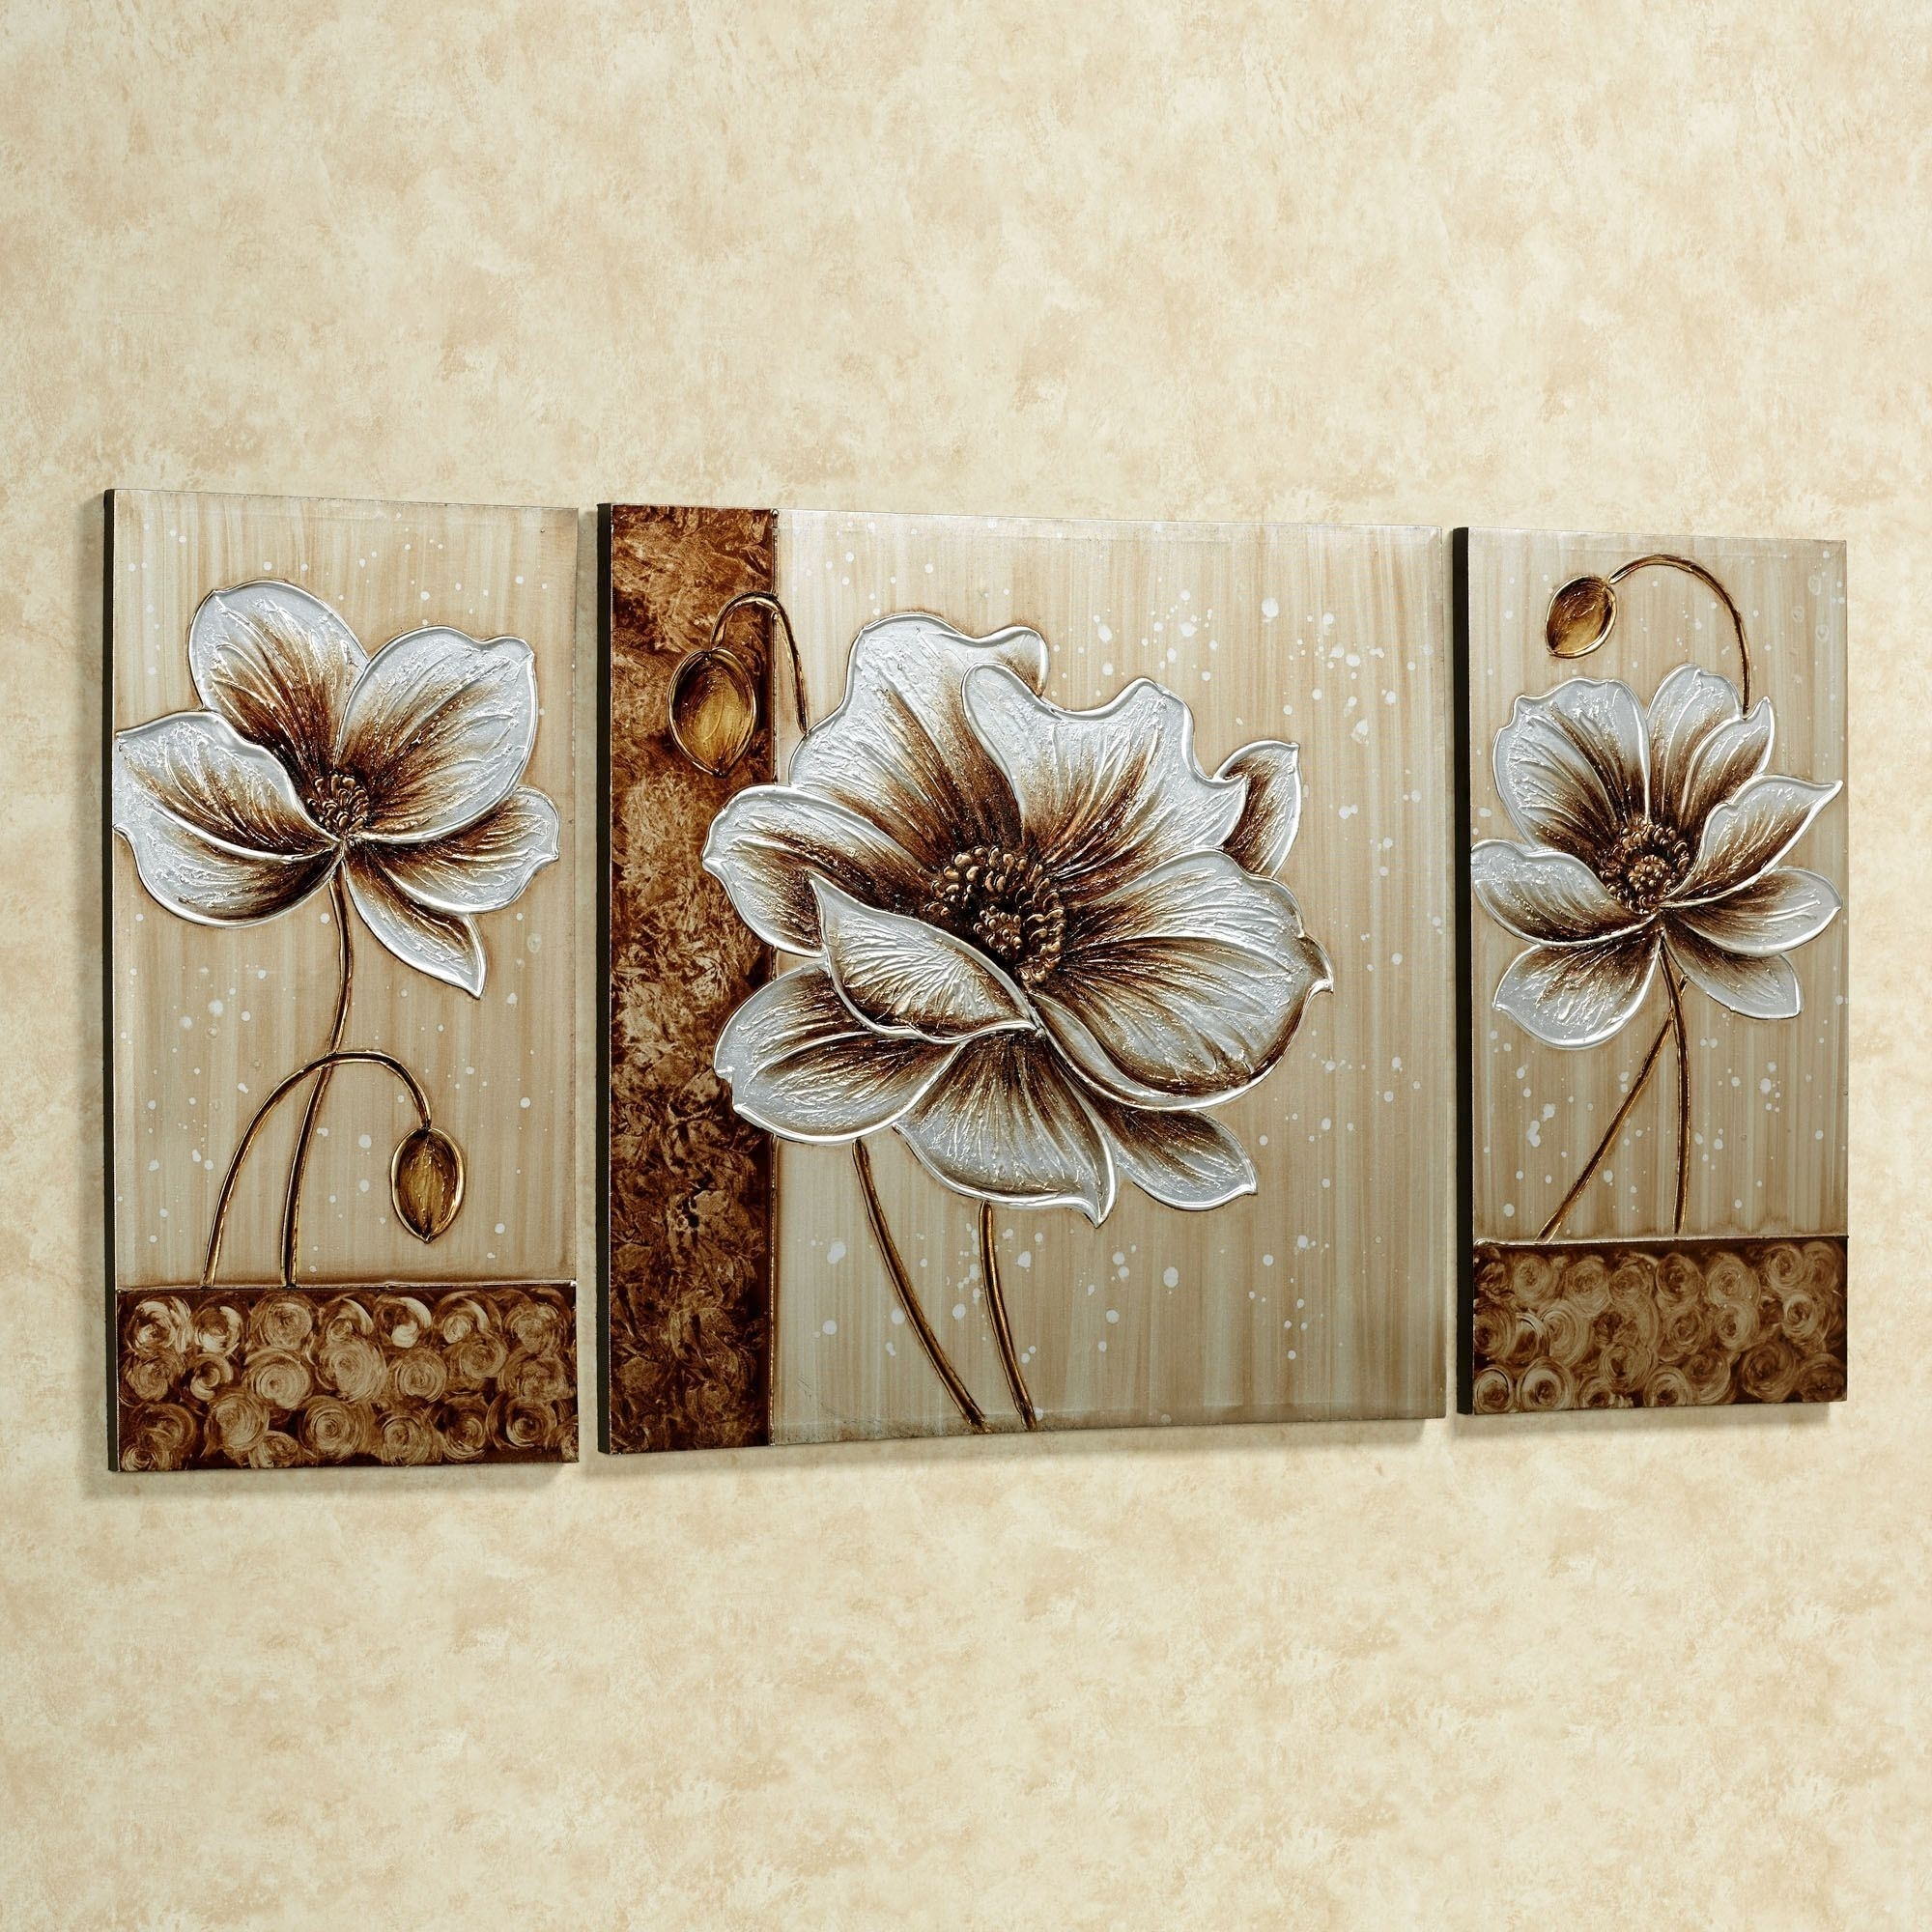 Subtle Elegance Floral Canvas Wall Art Set Intended For Current Wall Art Canvas (View 6 of 15)